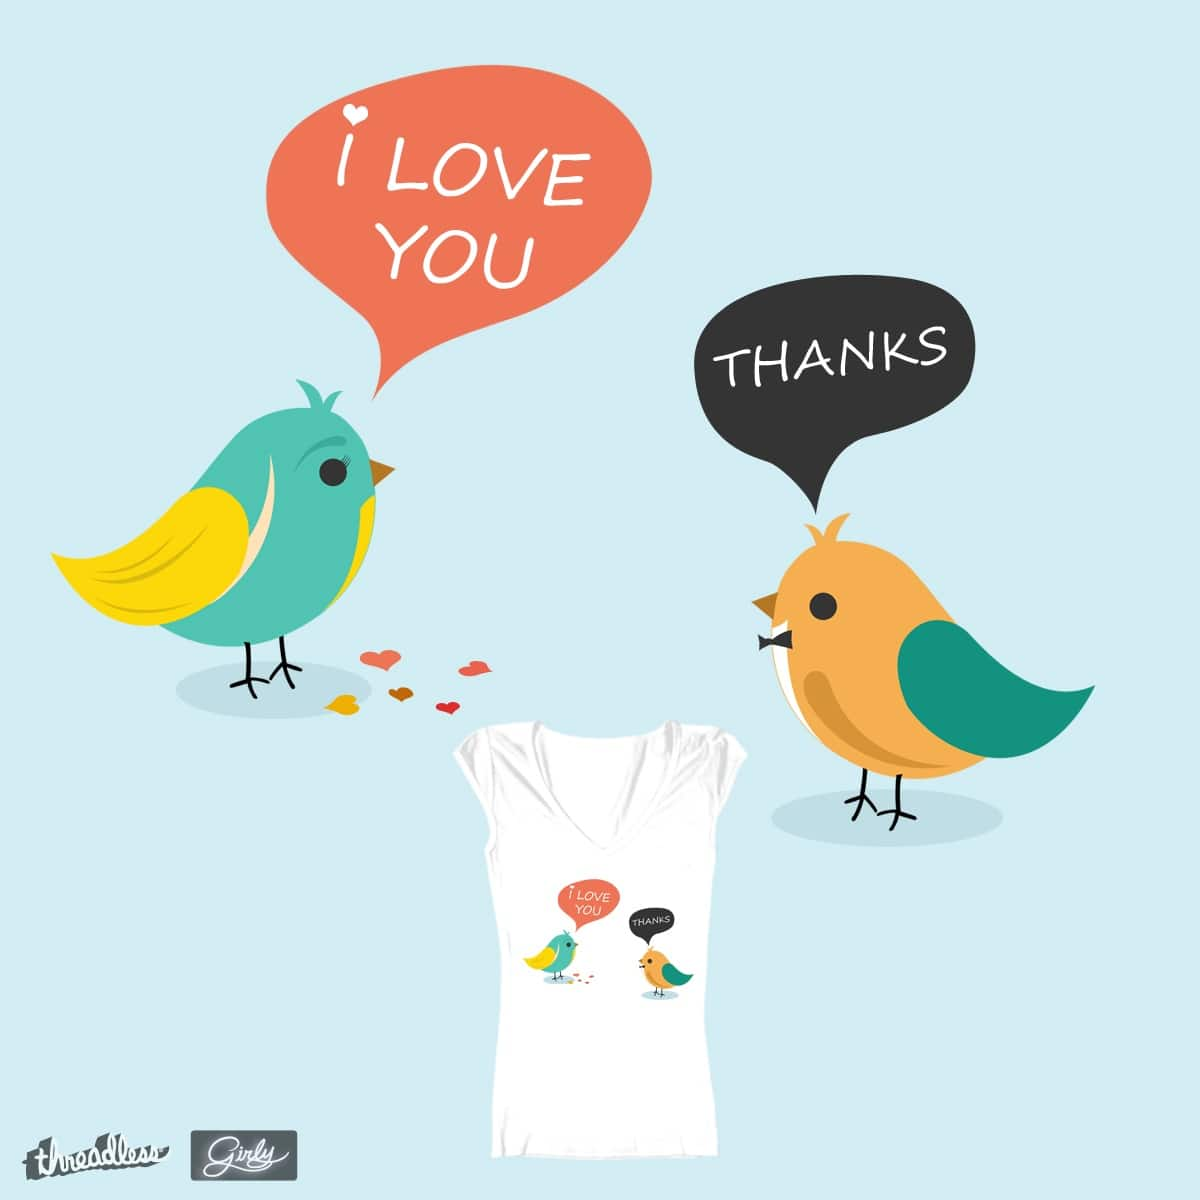 I Love You NOT by lelelude on Threadless